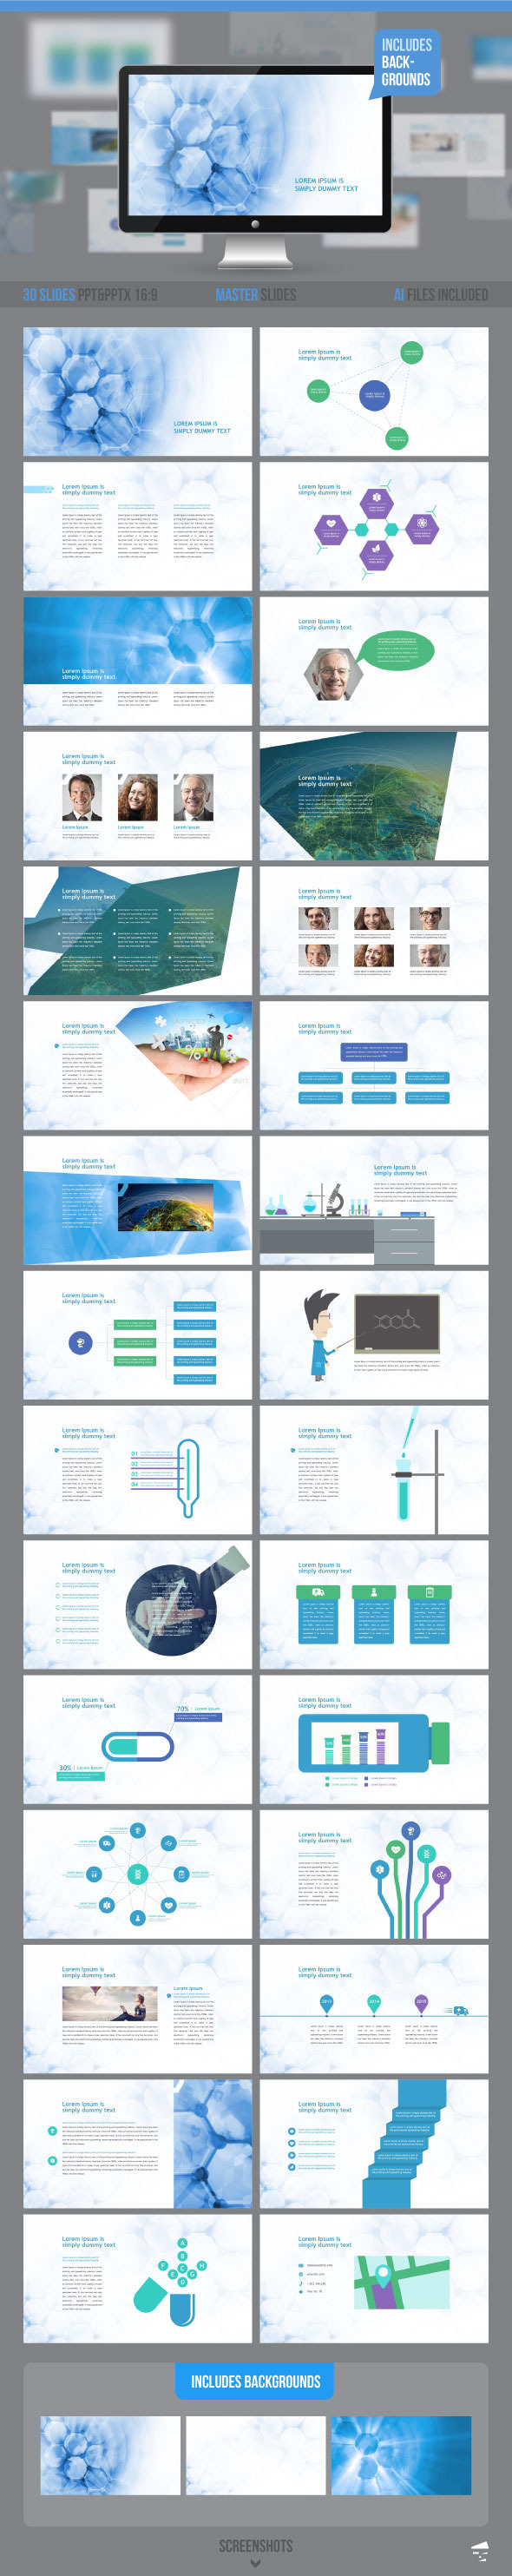 Medical powerpoint templates from graphicriver toneelgroepblik Images